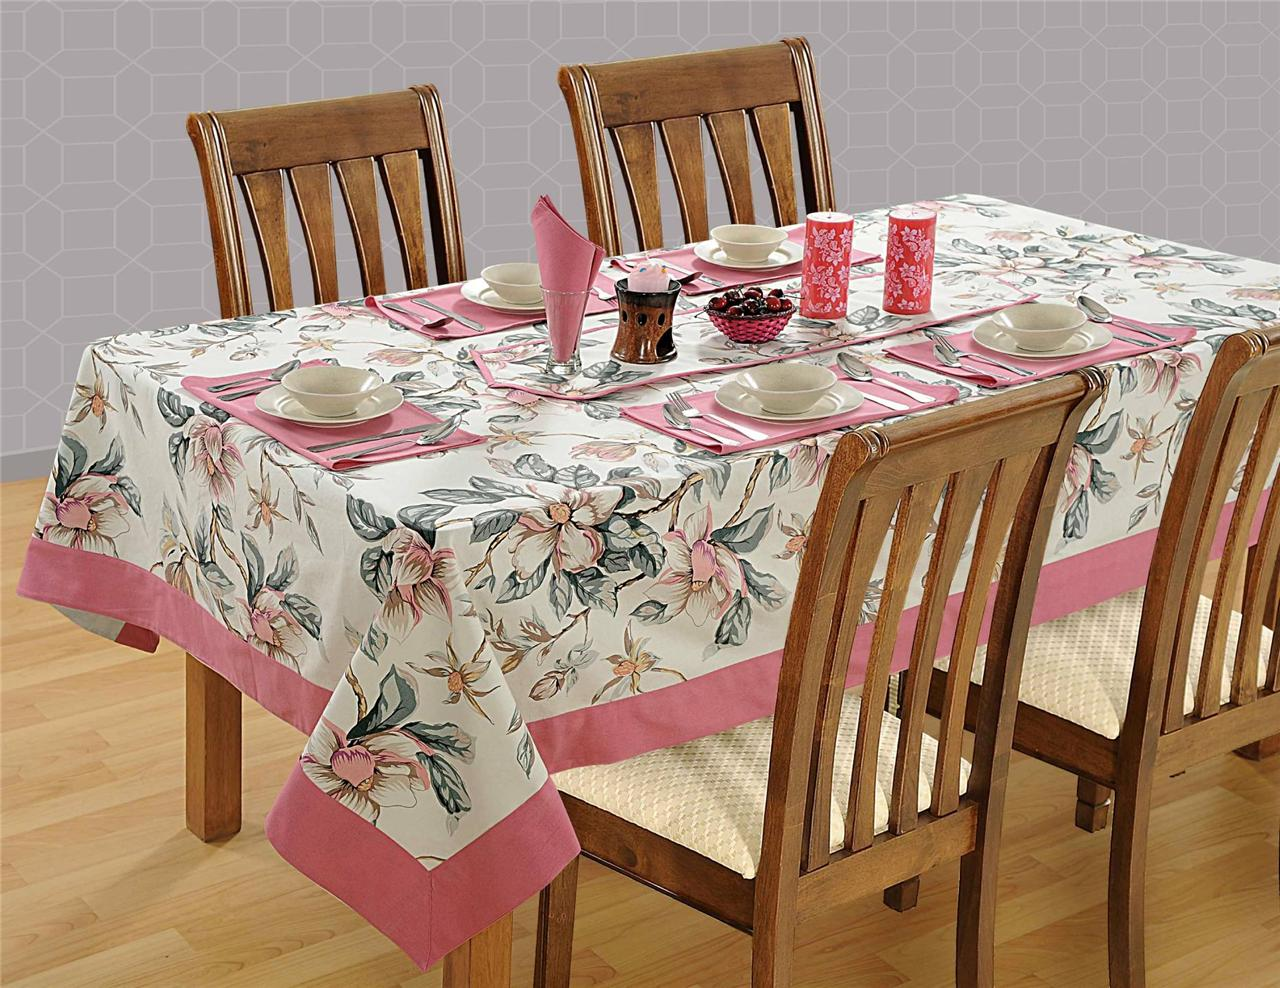 8 Seater Pure Cotton Table Linen Set 1 Table Cloth 8  : 813129029o from www.ebay.com.au size 1280 x 988 jpeg 225kB